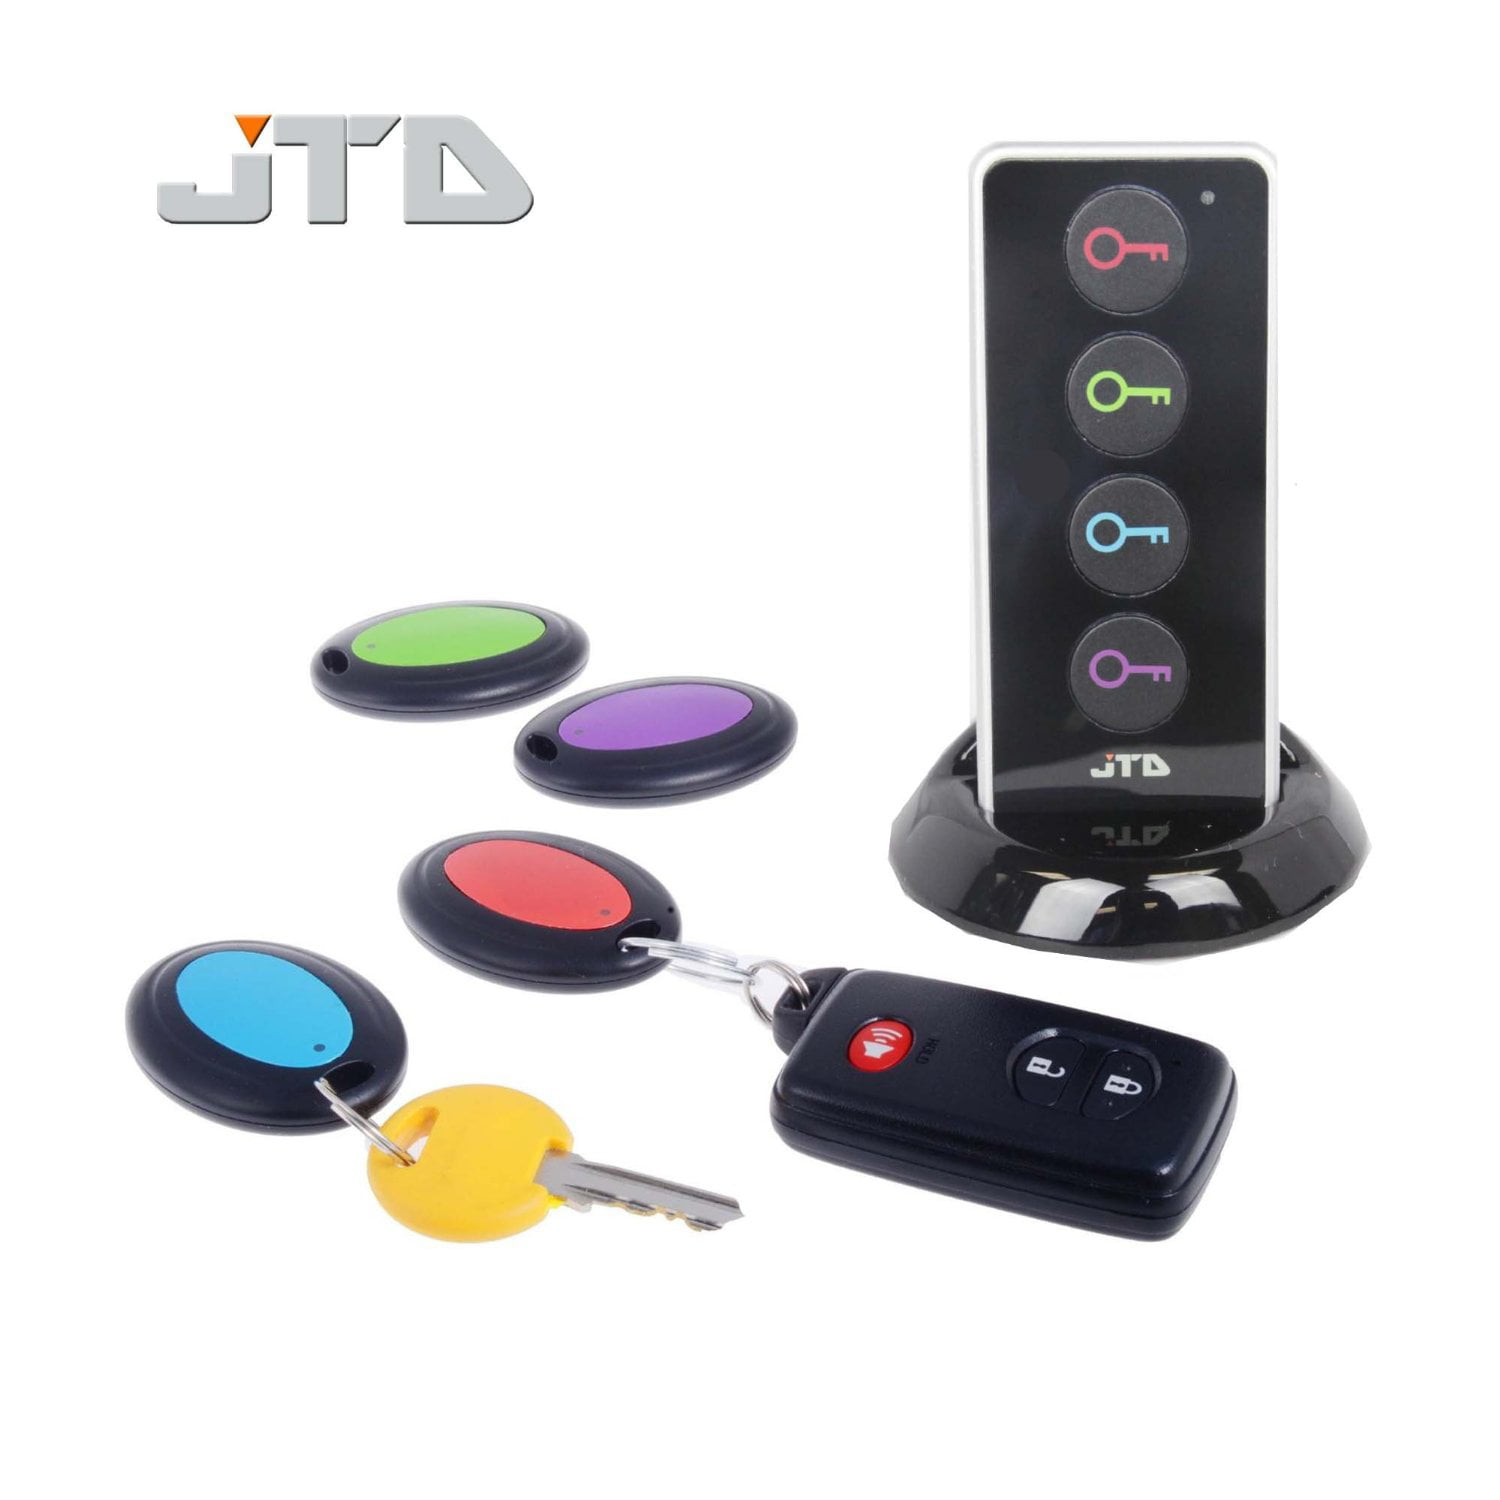 J Tech Digital Inc On Walmart Seller Reviews Marketplace